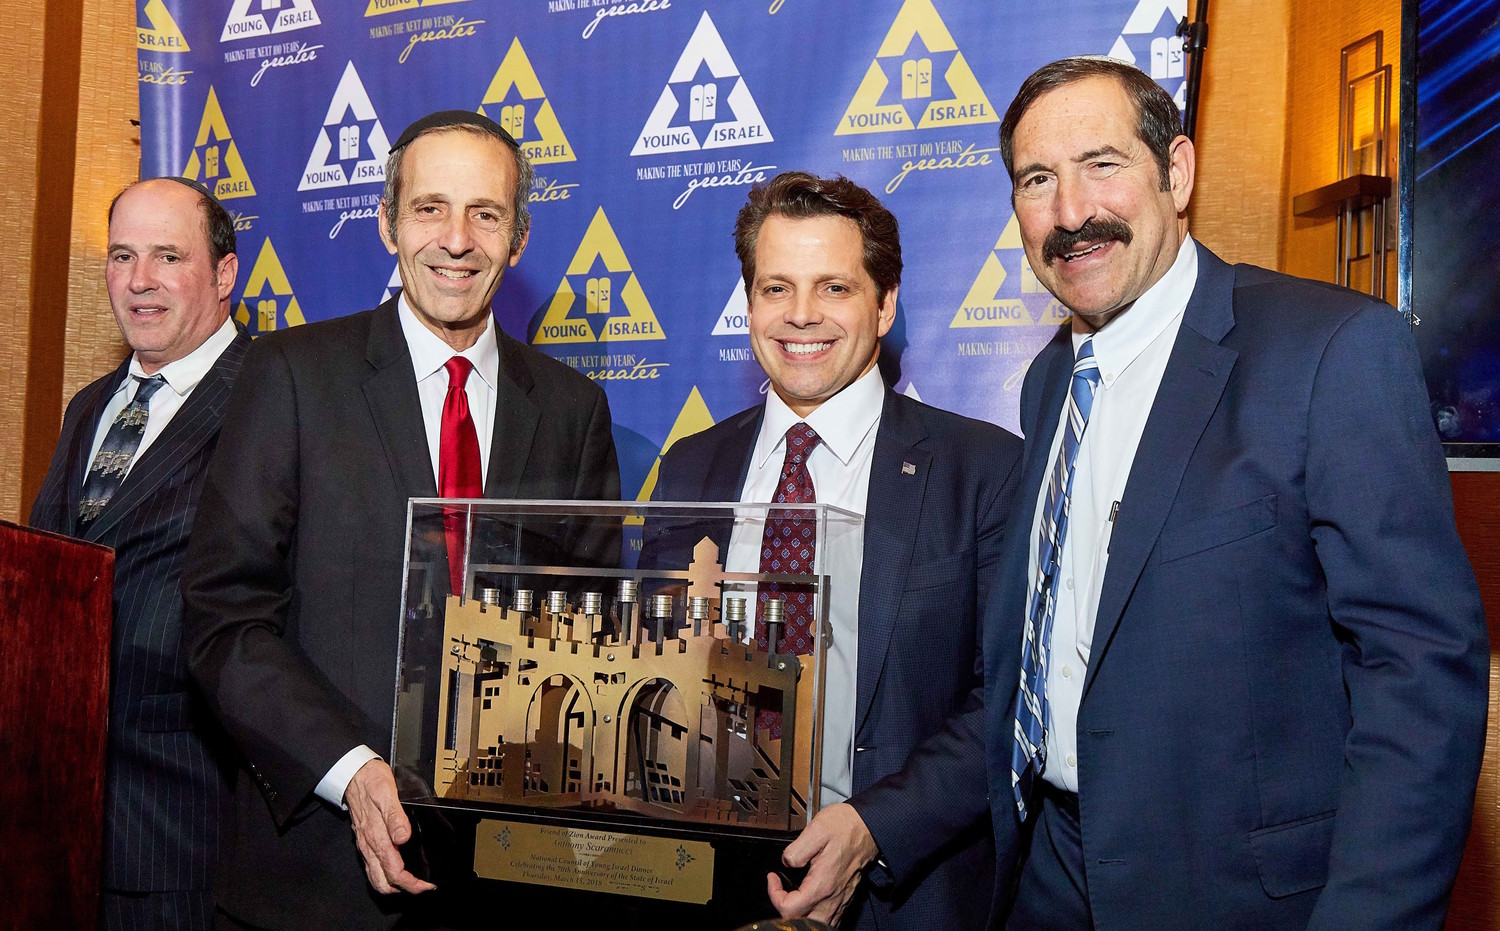 Anthony Scaramucci was presented with The Friend of Zion Award by (from left) NCYI President Farley Weiss, Journal and Dinner Coordinator Judah Rhine, and NCYI First Vice President Dr. Joseph Frager.